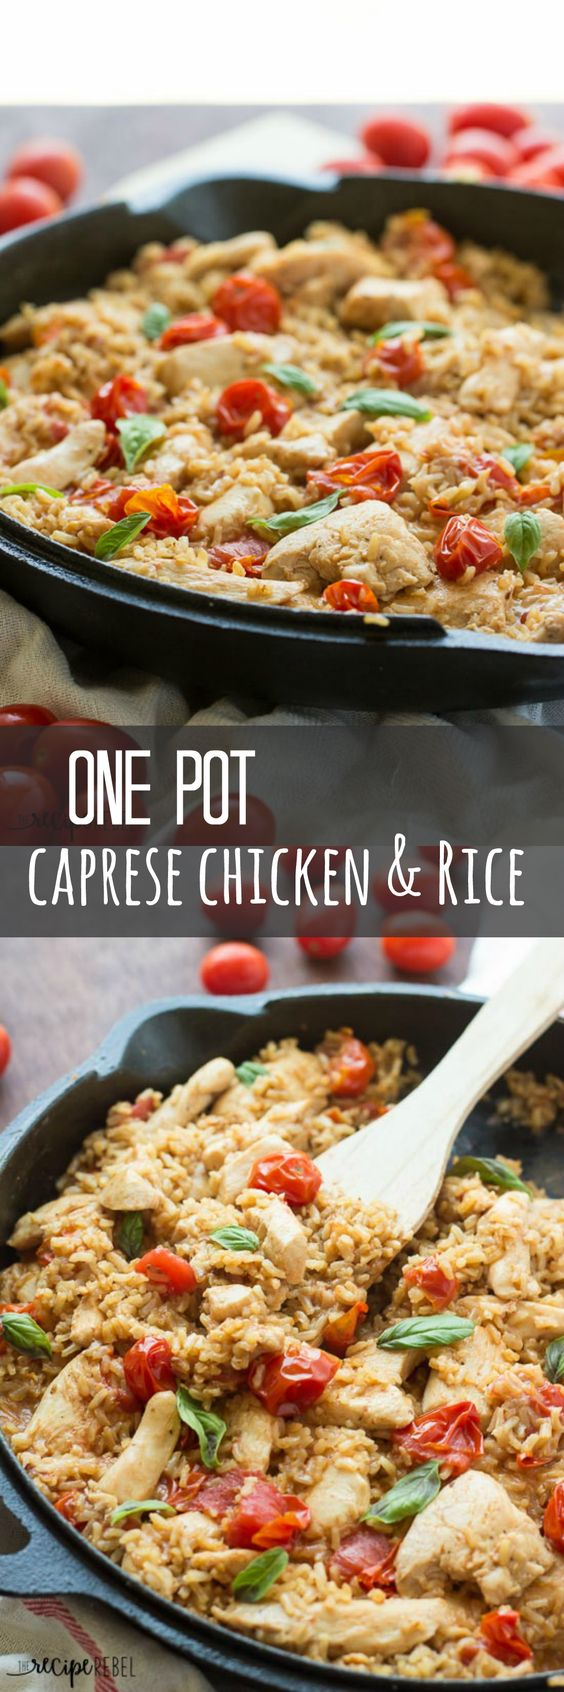 A new family favorite! Caprese Chicken and Rice is a simple, healthy flavorful meal that comes together completely in one pot!